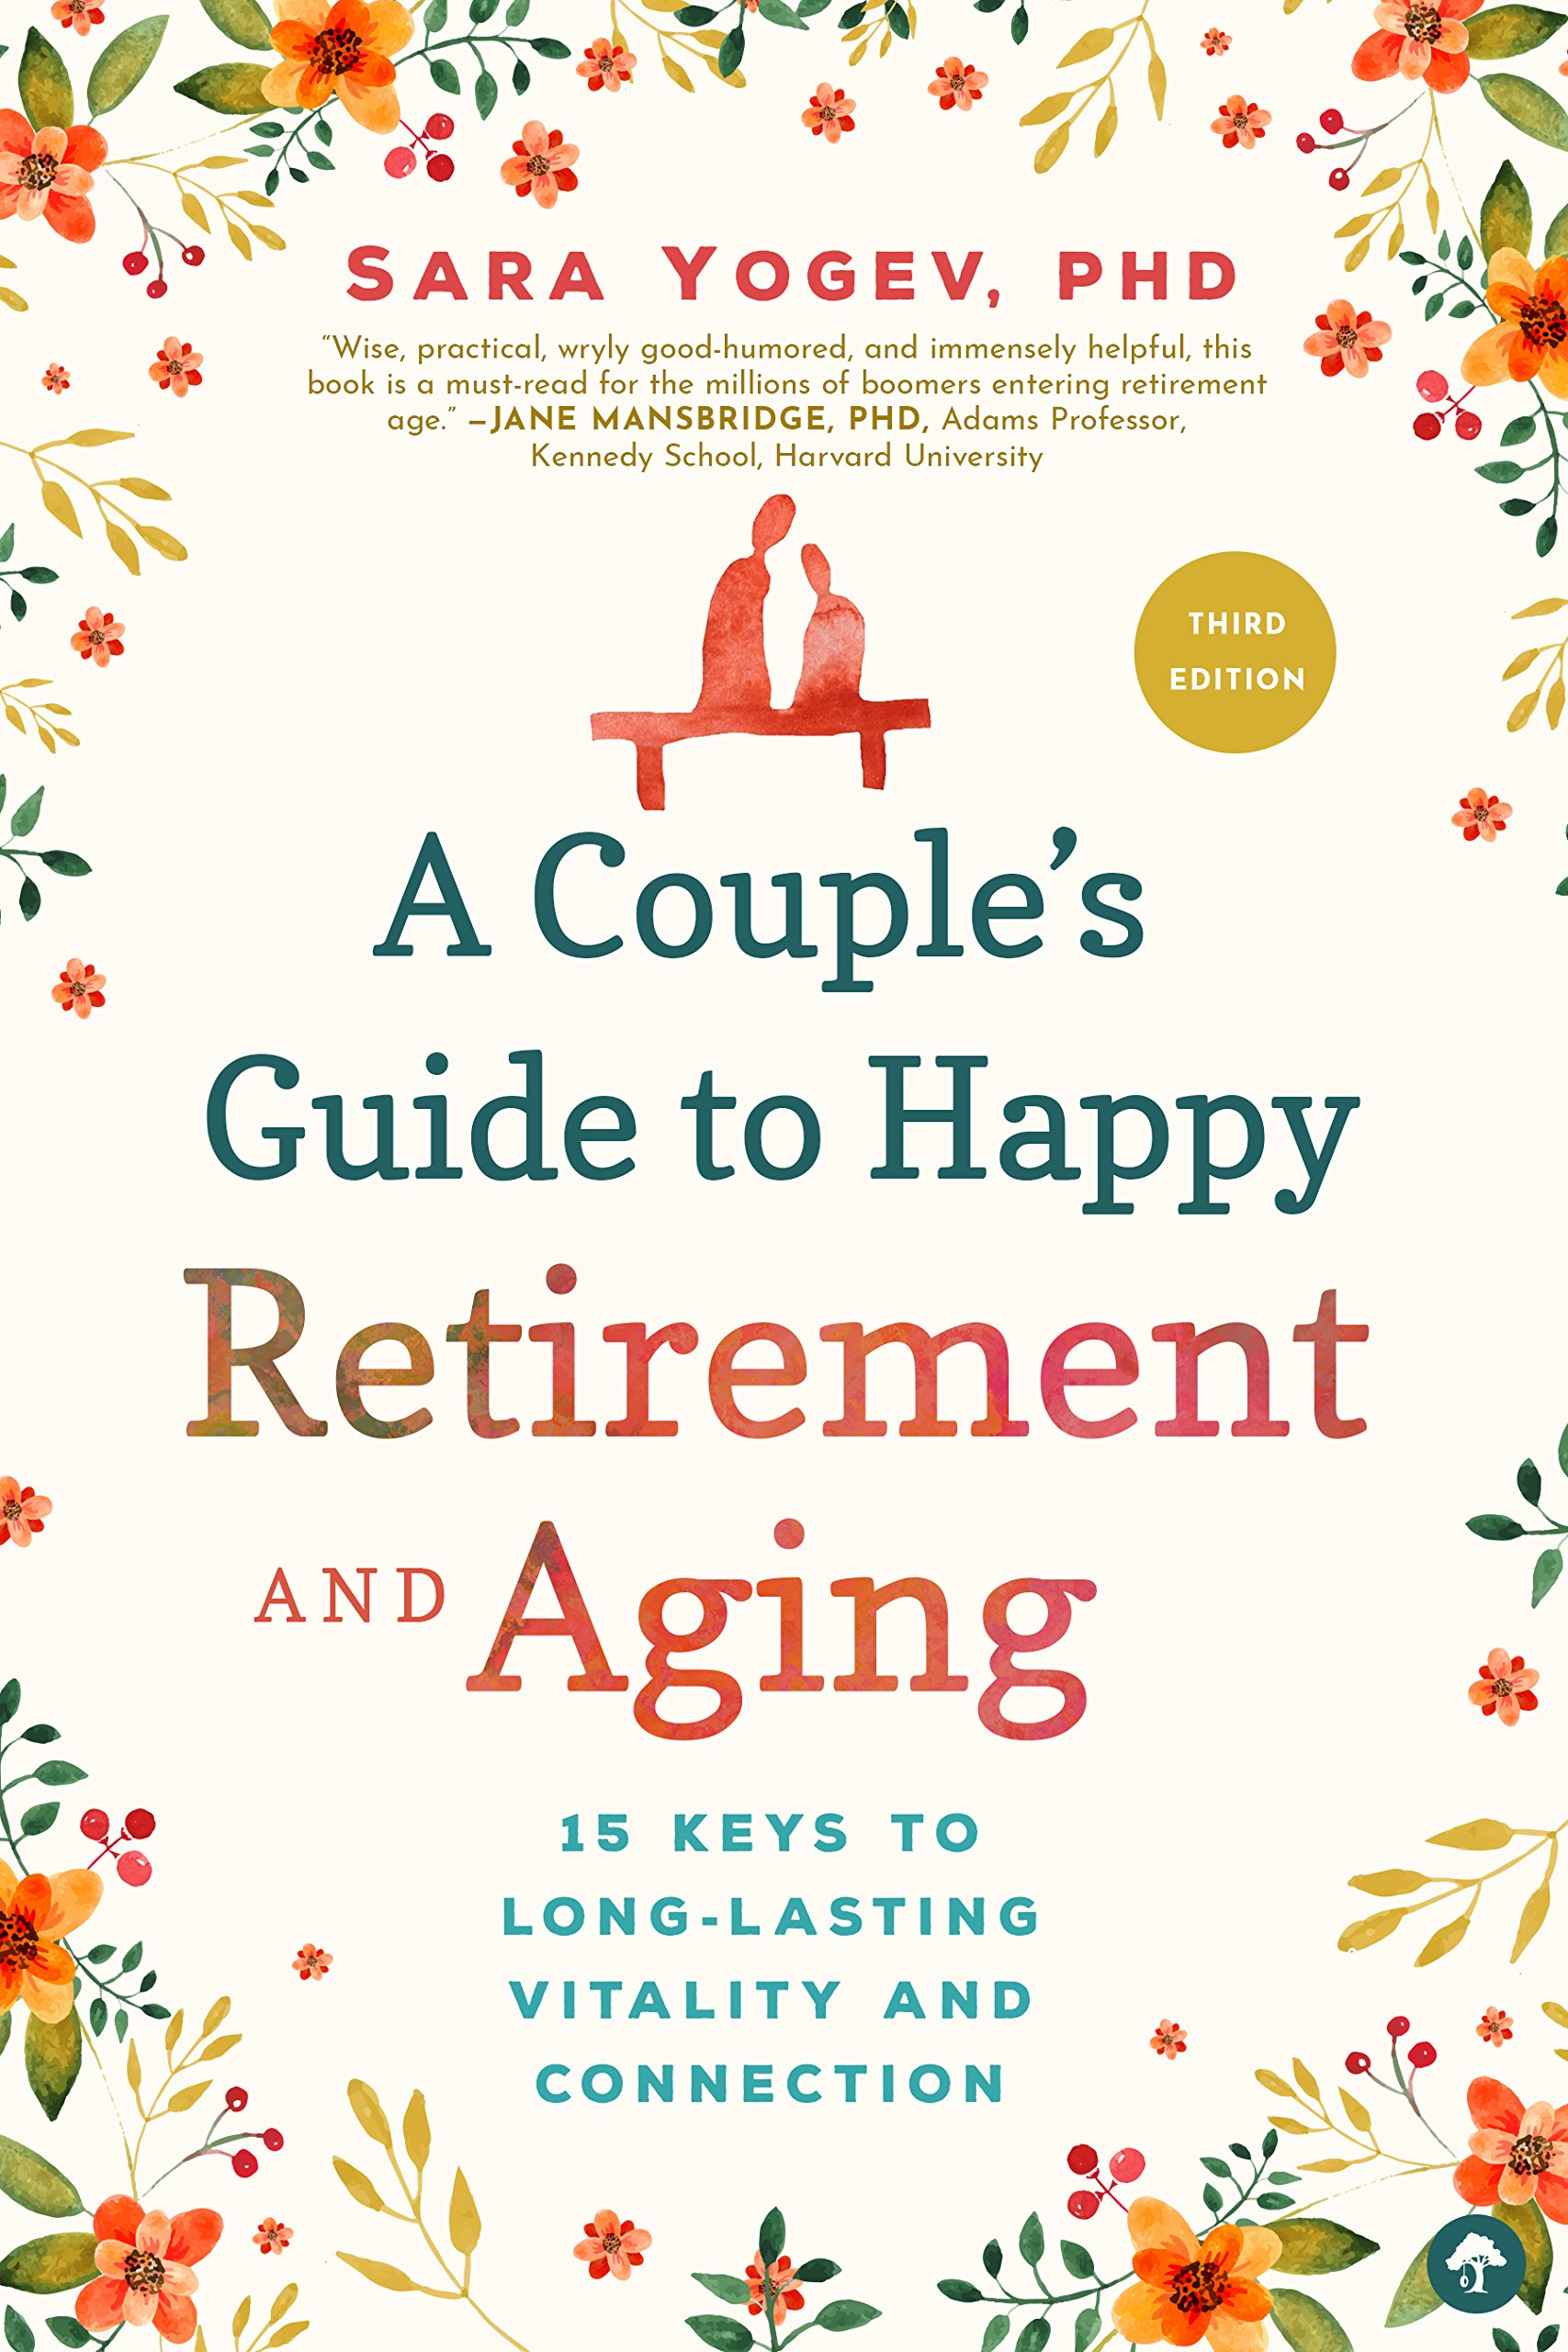 A Couple's Guide to Happy Retirement and Aging: 15 Keys to a Lasting Relationship pdf epub